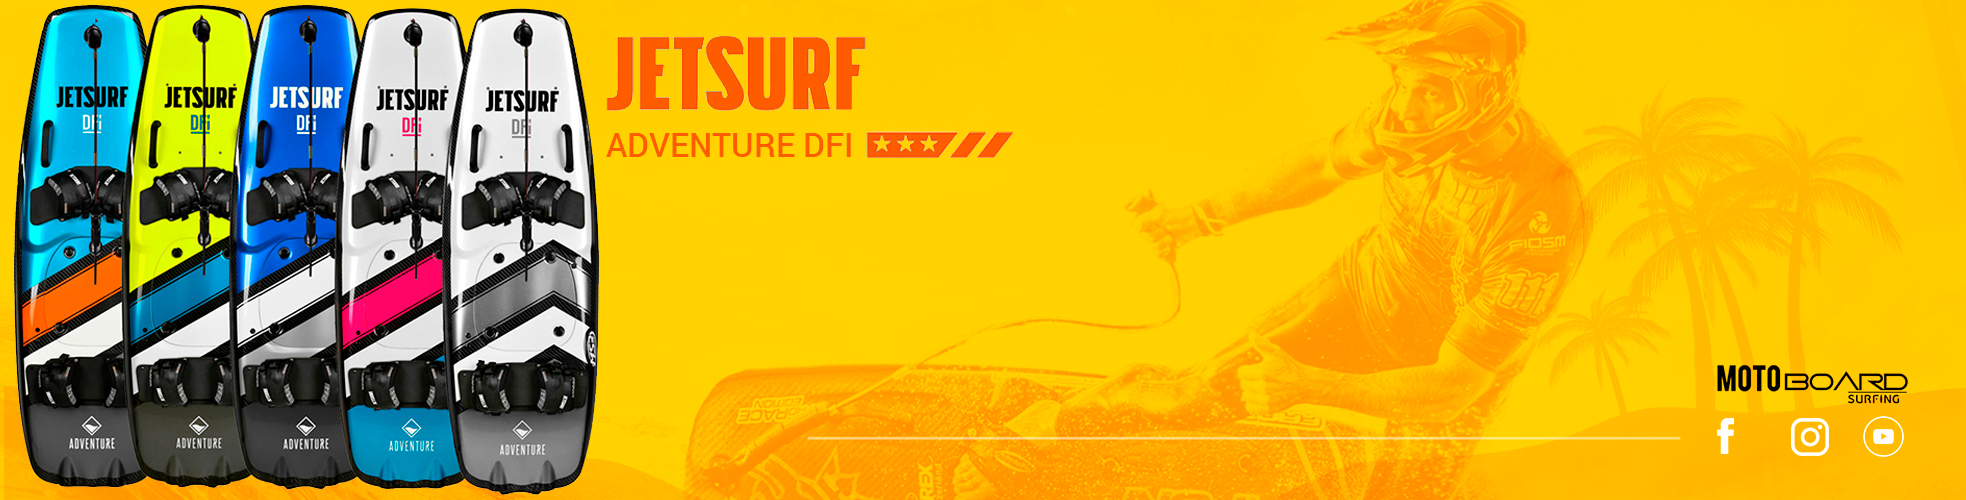 Jet Surf ADVENTURE DFI